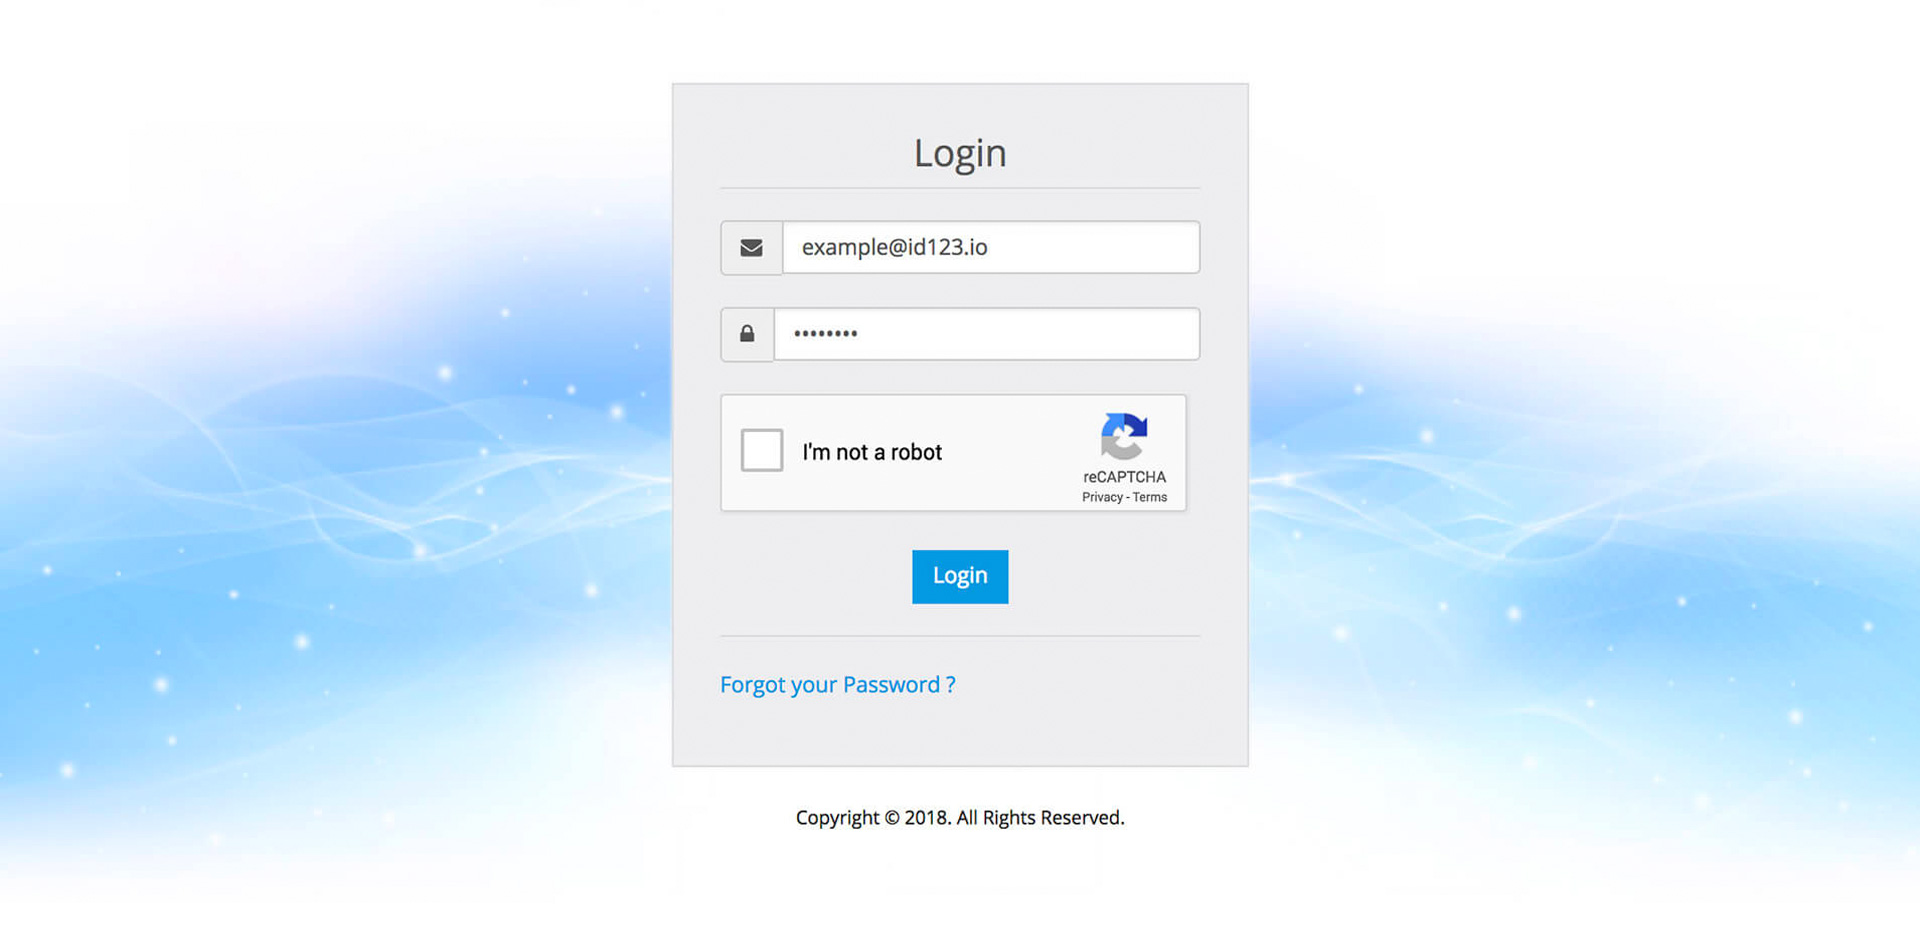 Sign into your IDMS account